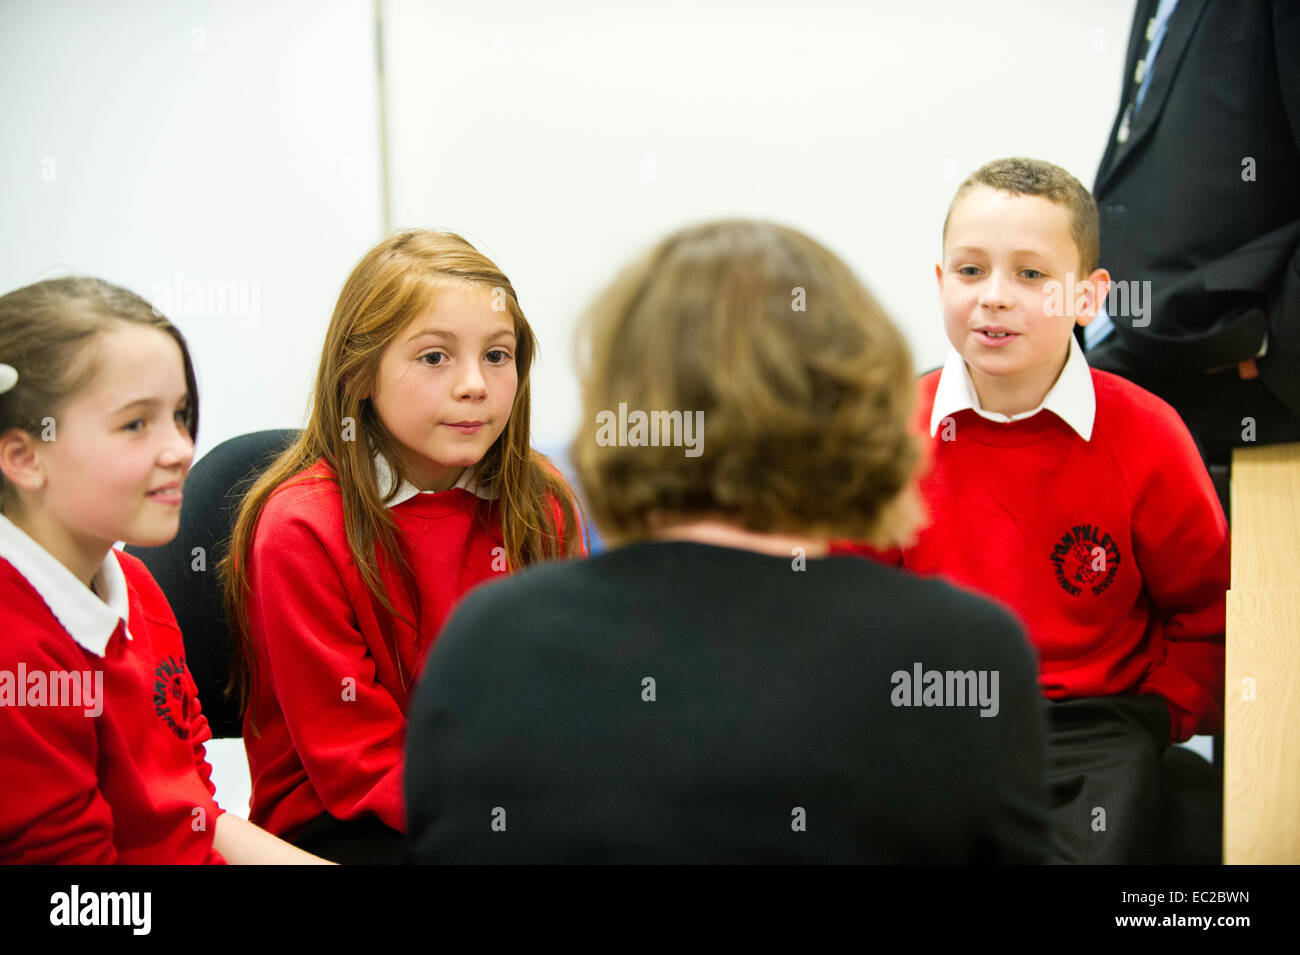 A teacher educating 3 children - Stock Image